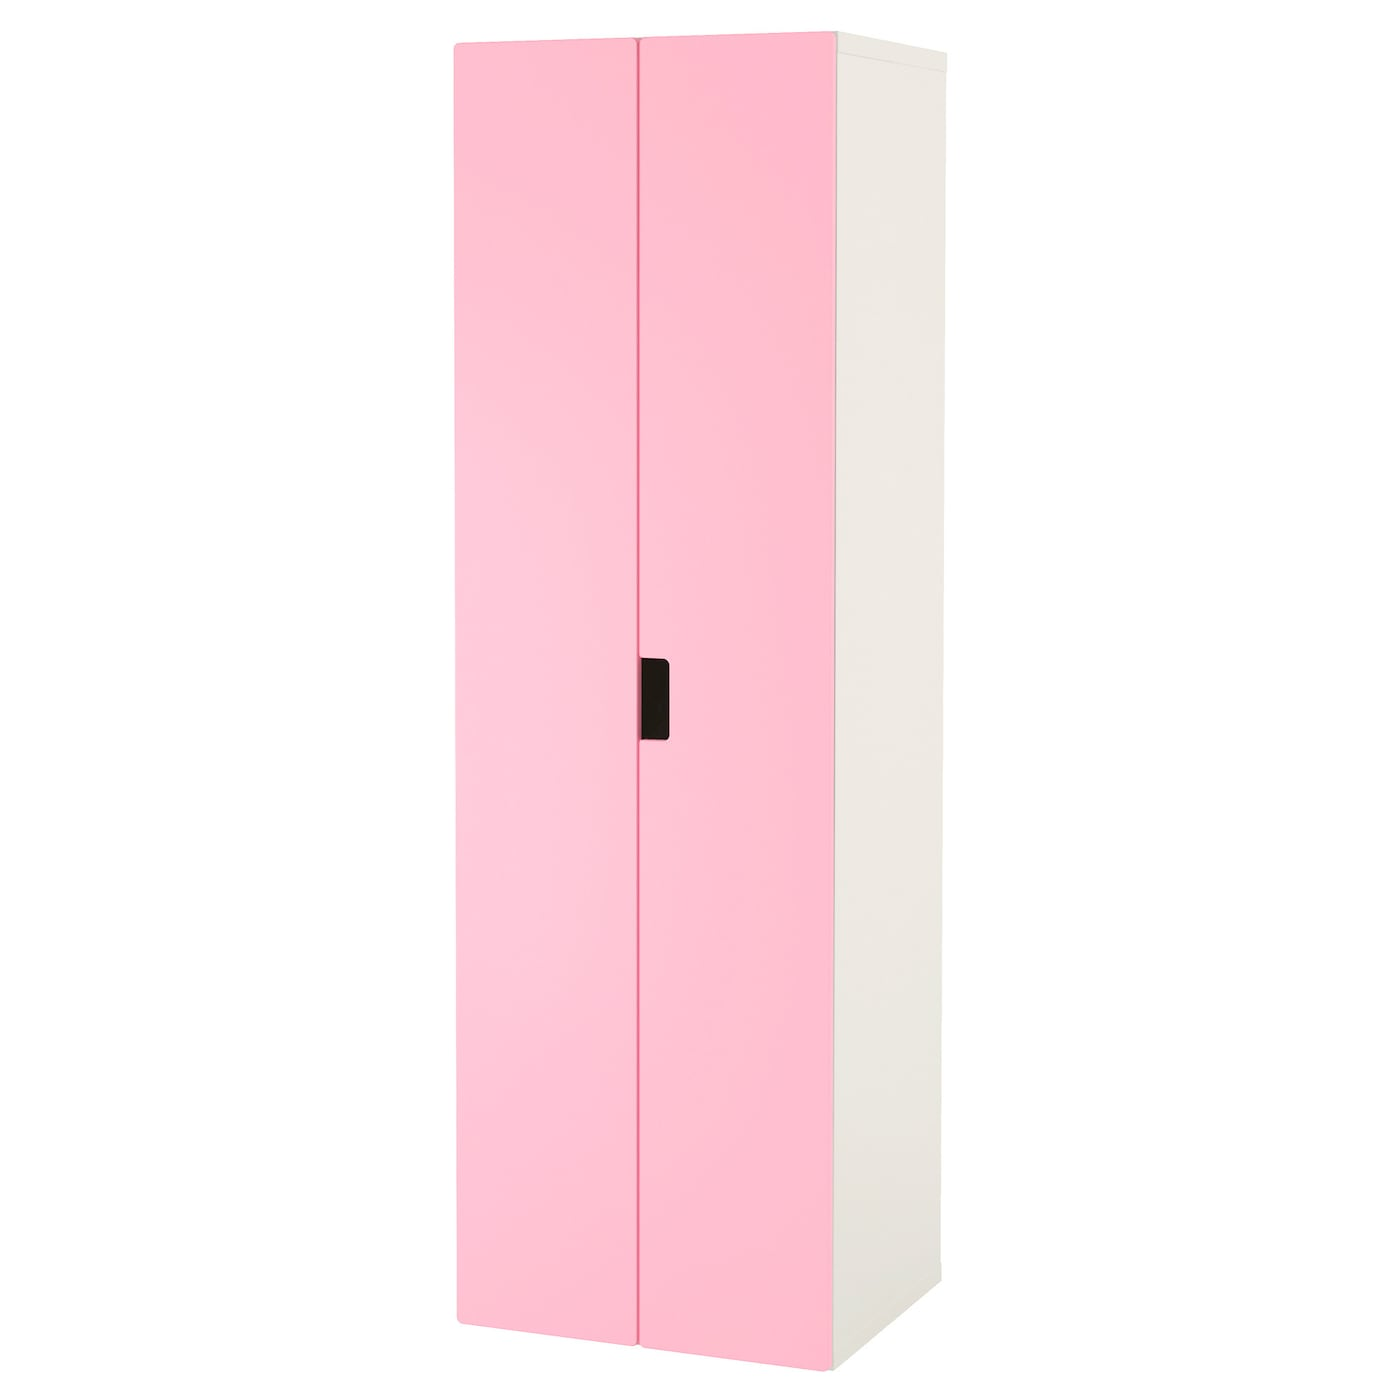 stuva armoire penderie blanc rose 60x50x192 cm ikea. Black Bedroom Furniture Sets. Home Design Ideas